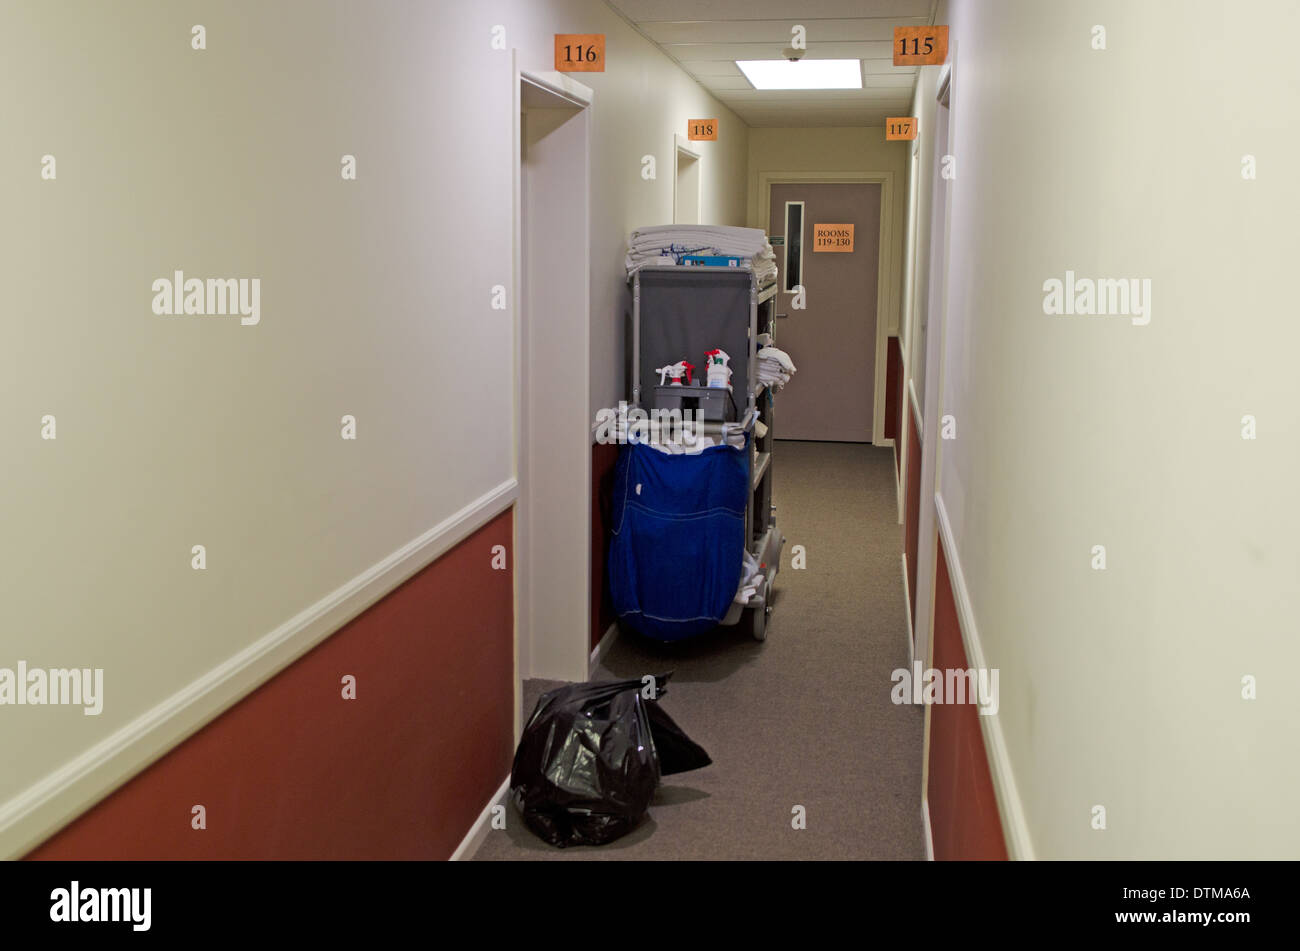 Room service equipment in hotel corridor stock photo for Equipement hotel